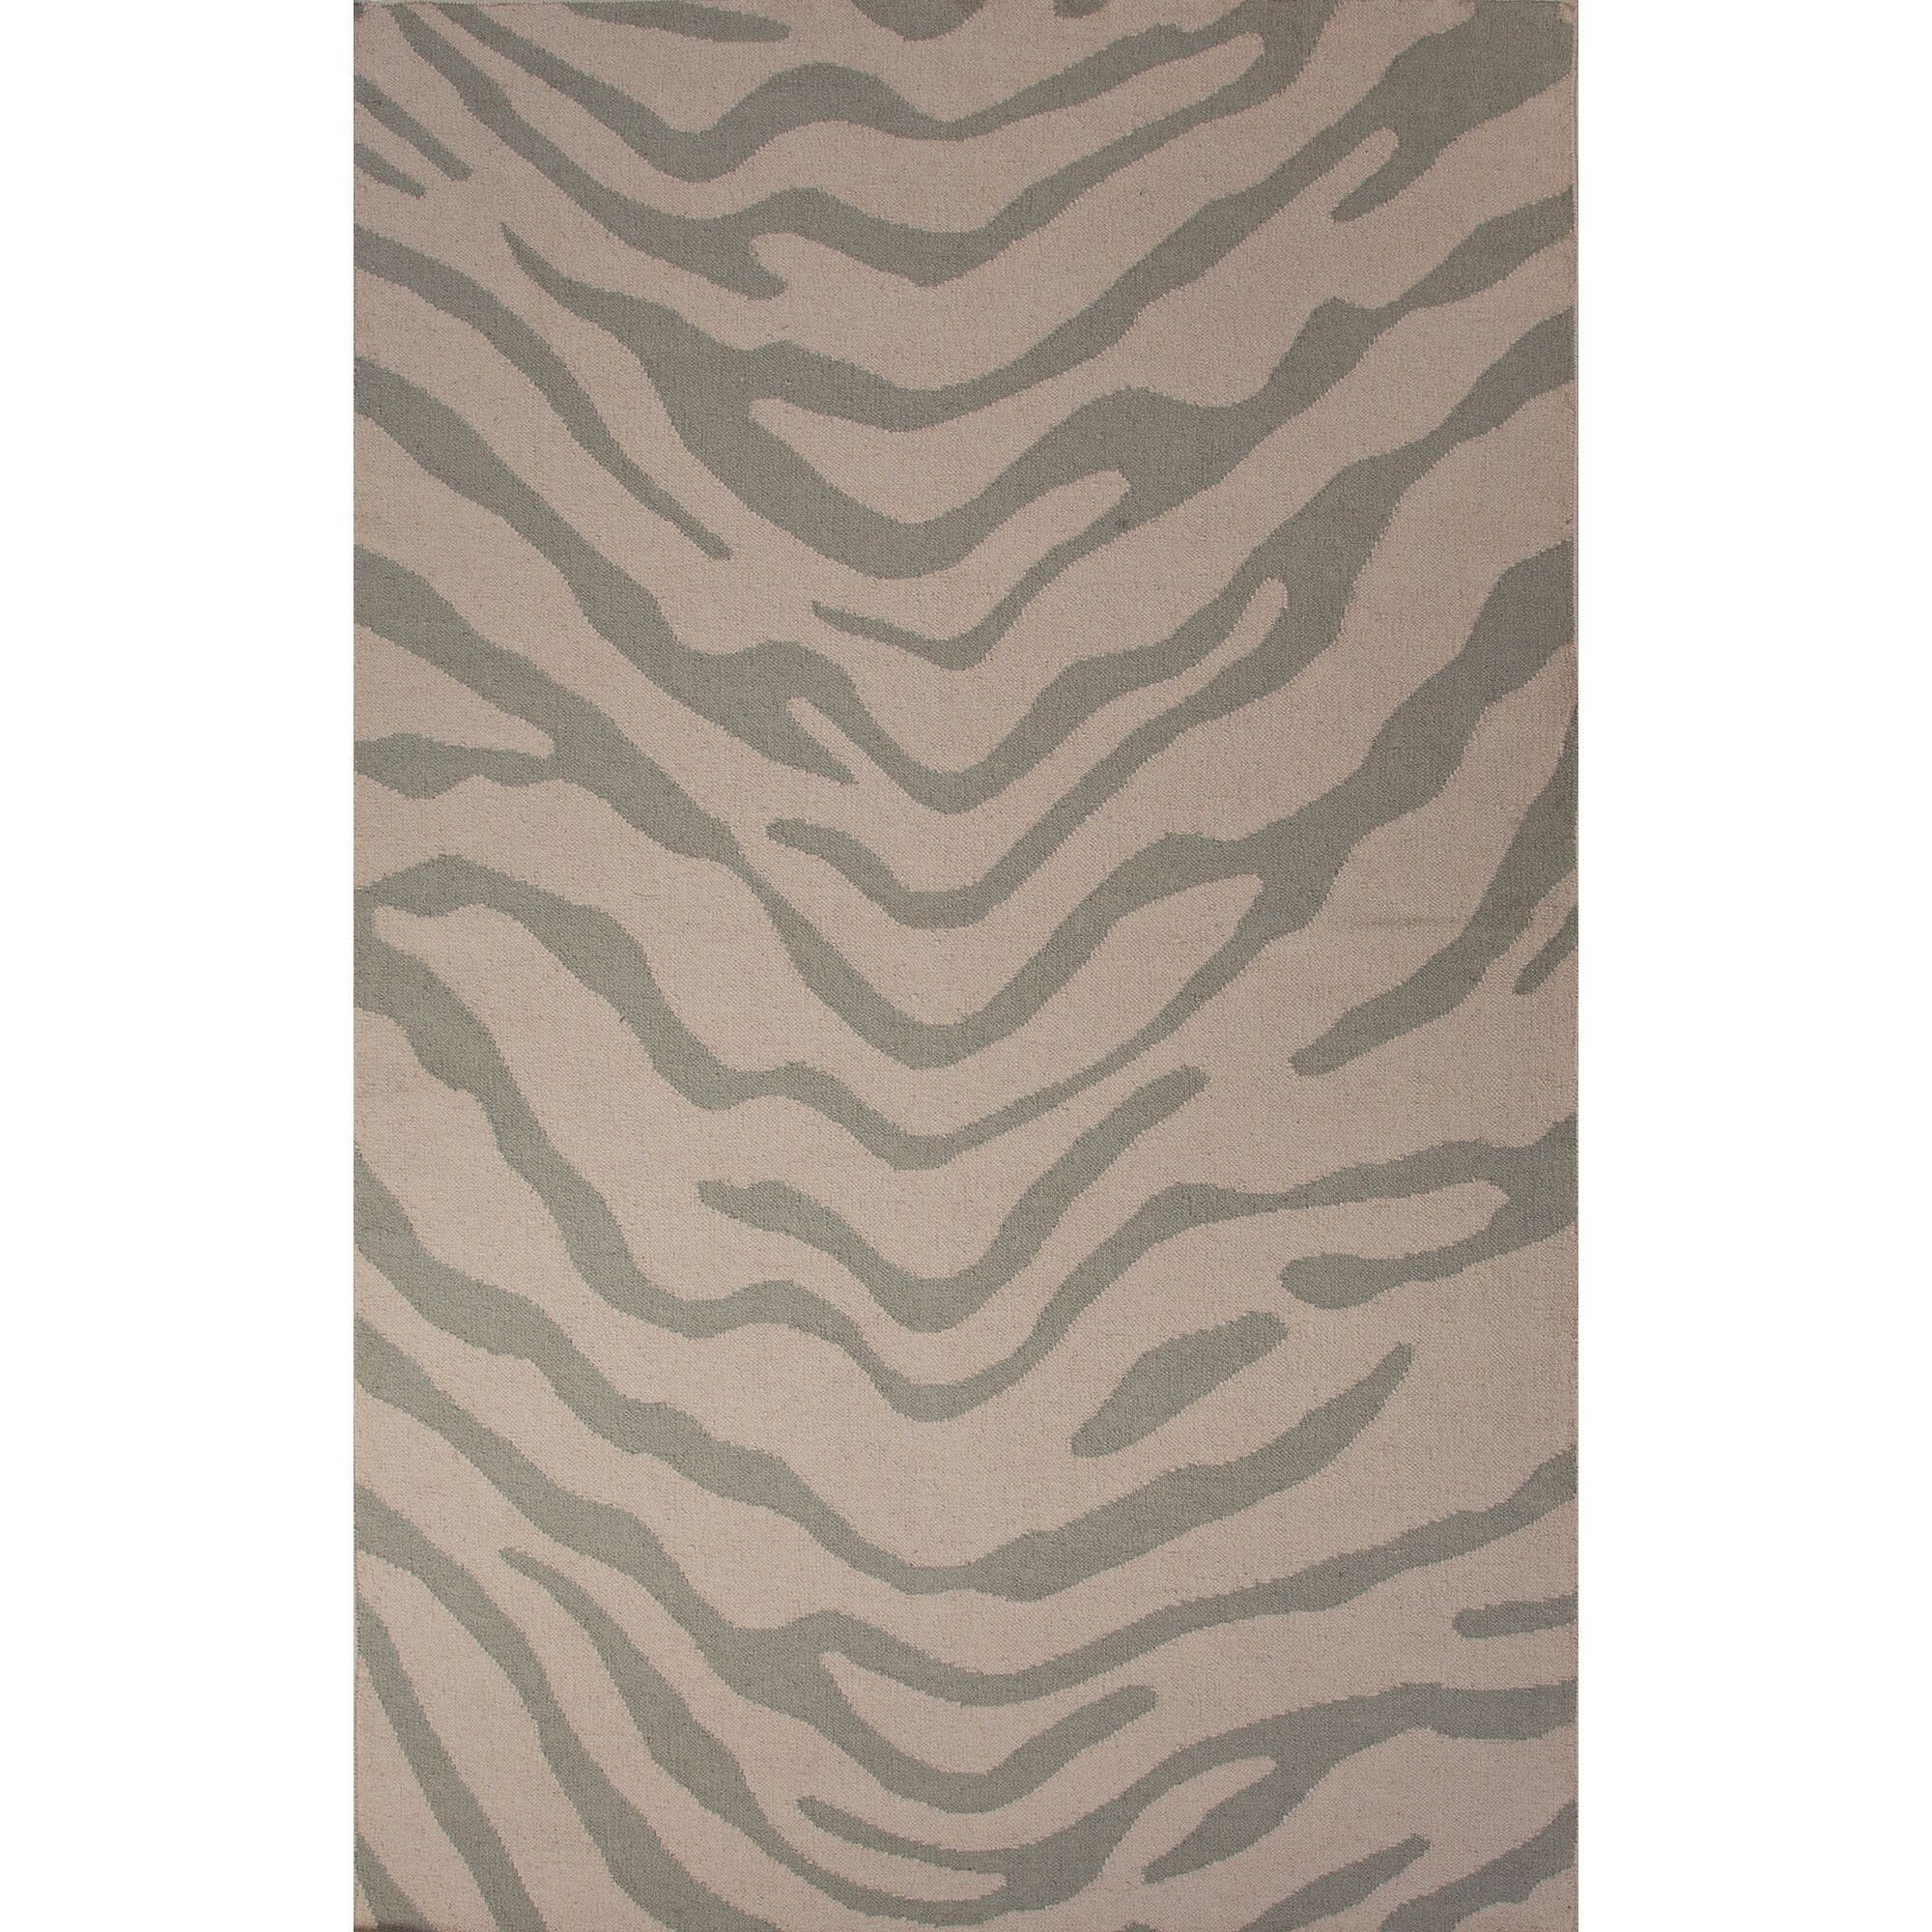 National Geographic Home Wool Flat Weave Gray Area Rug Rug Size: 5' x 8'